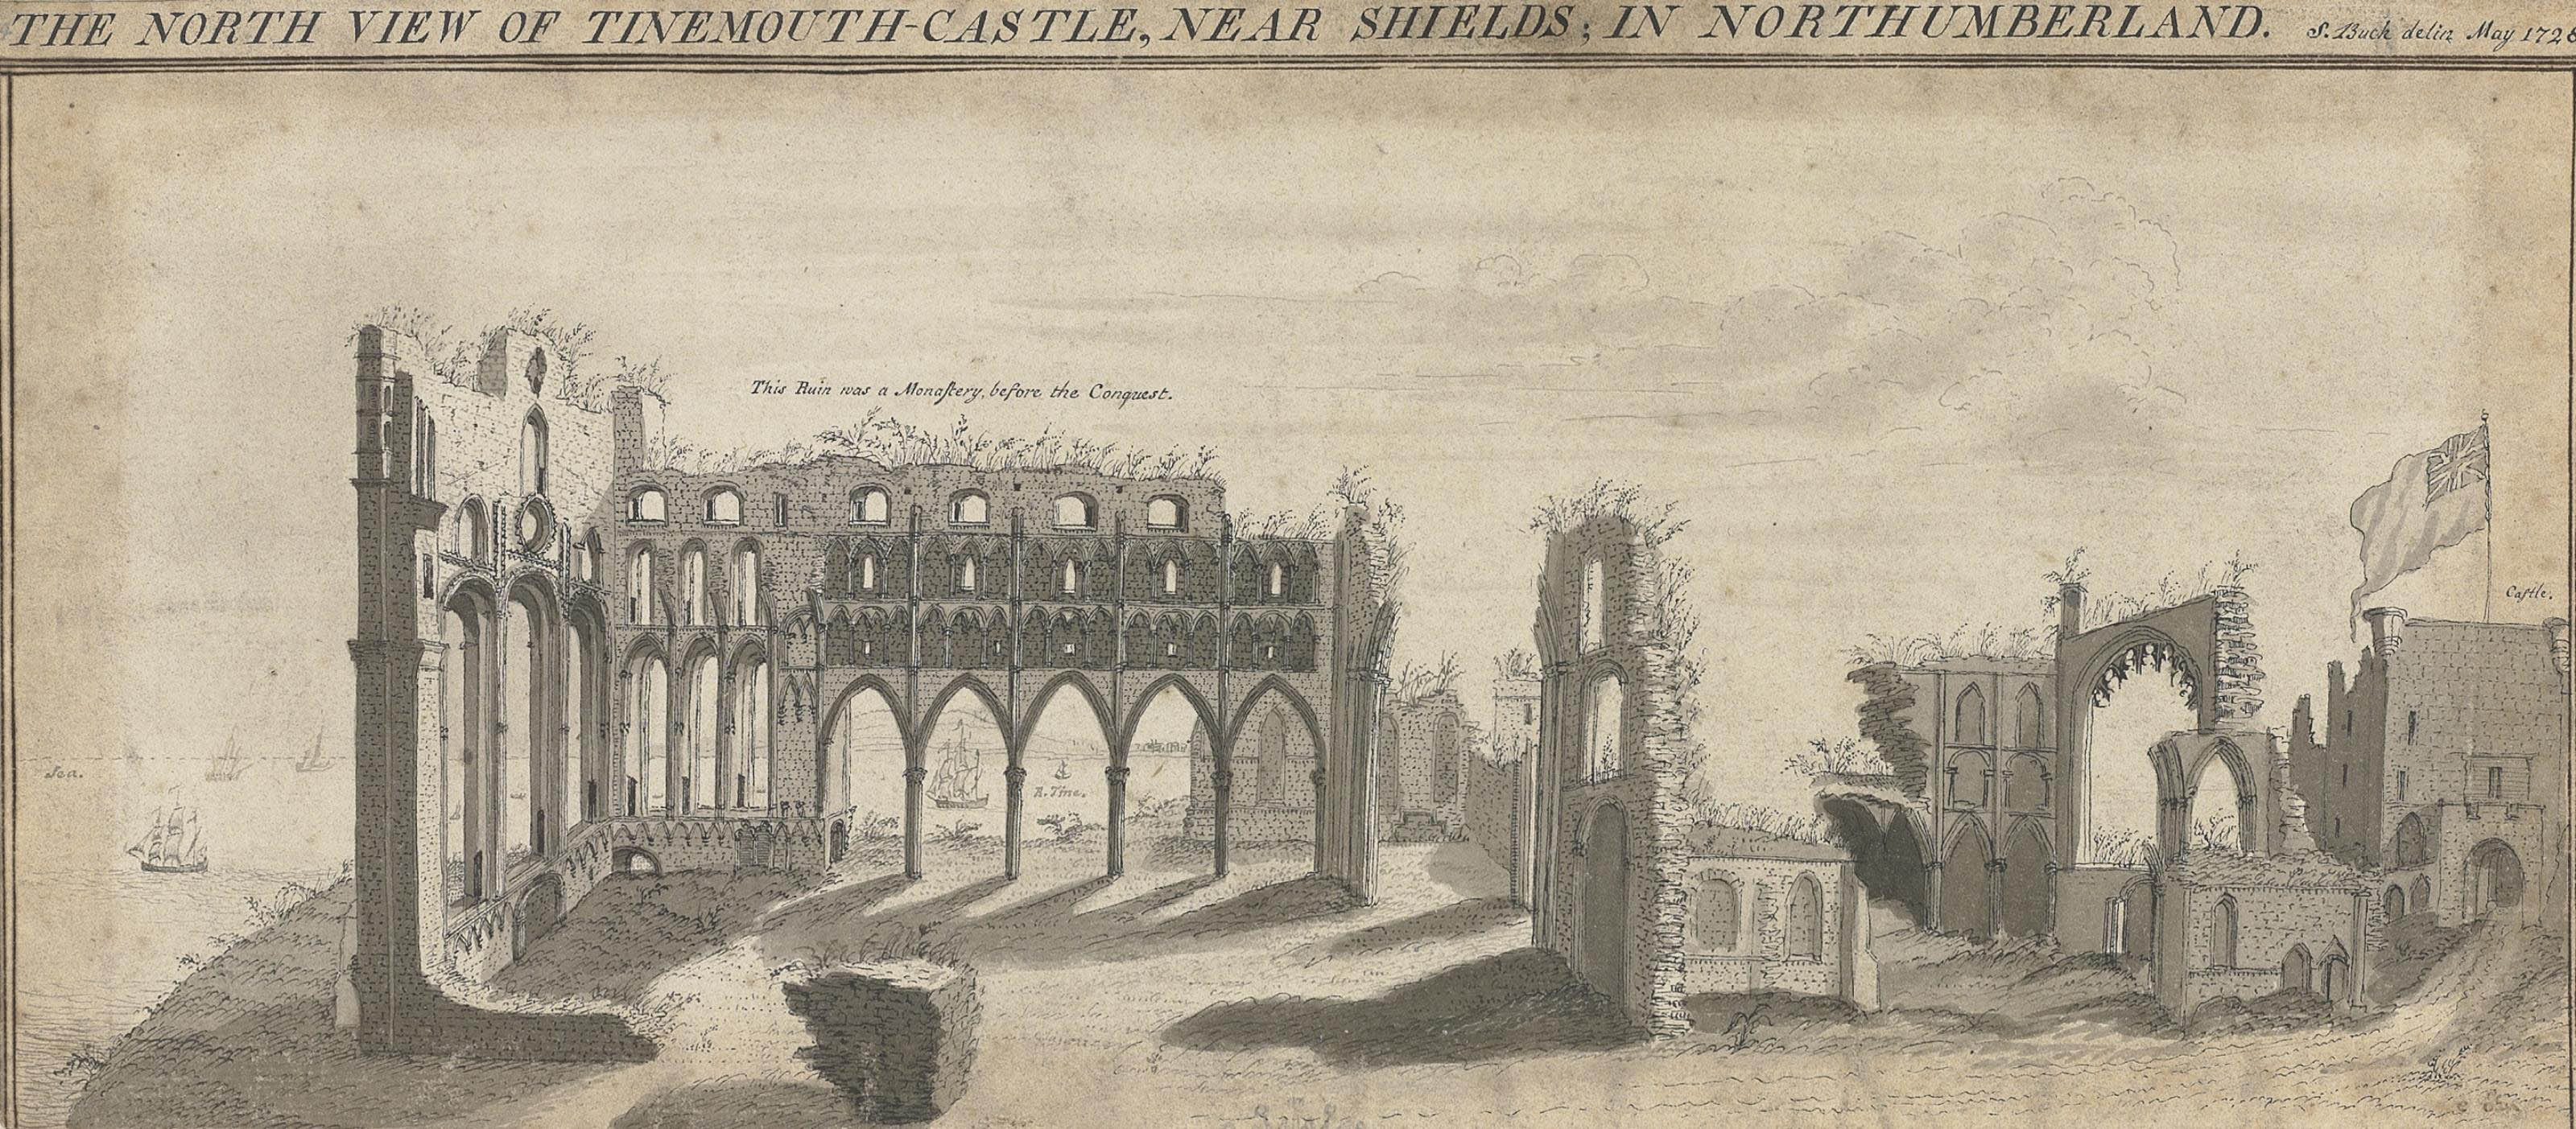 Tynemouth Castle, Northumberland